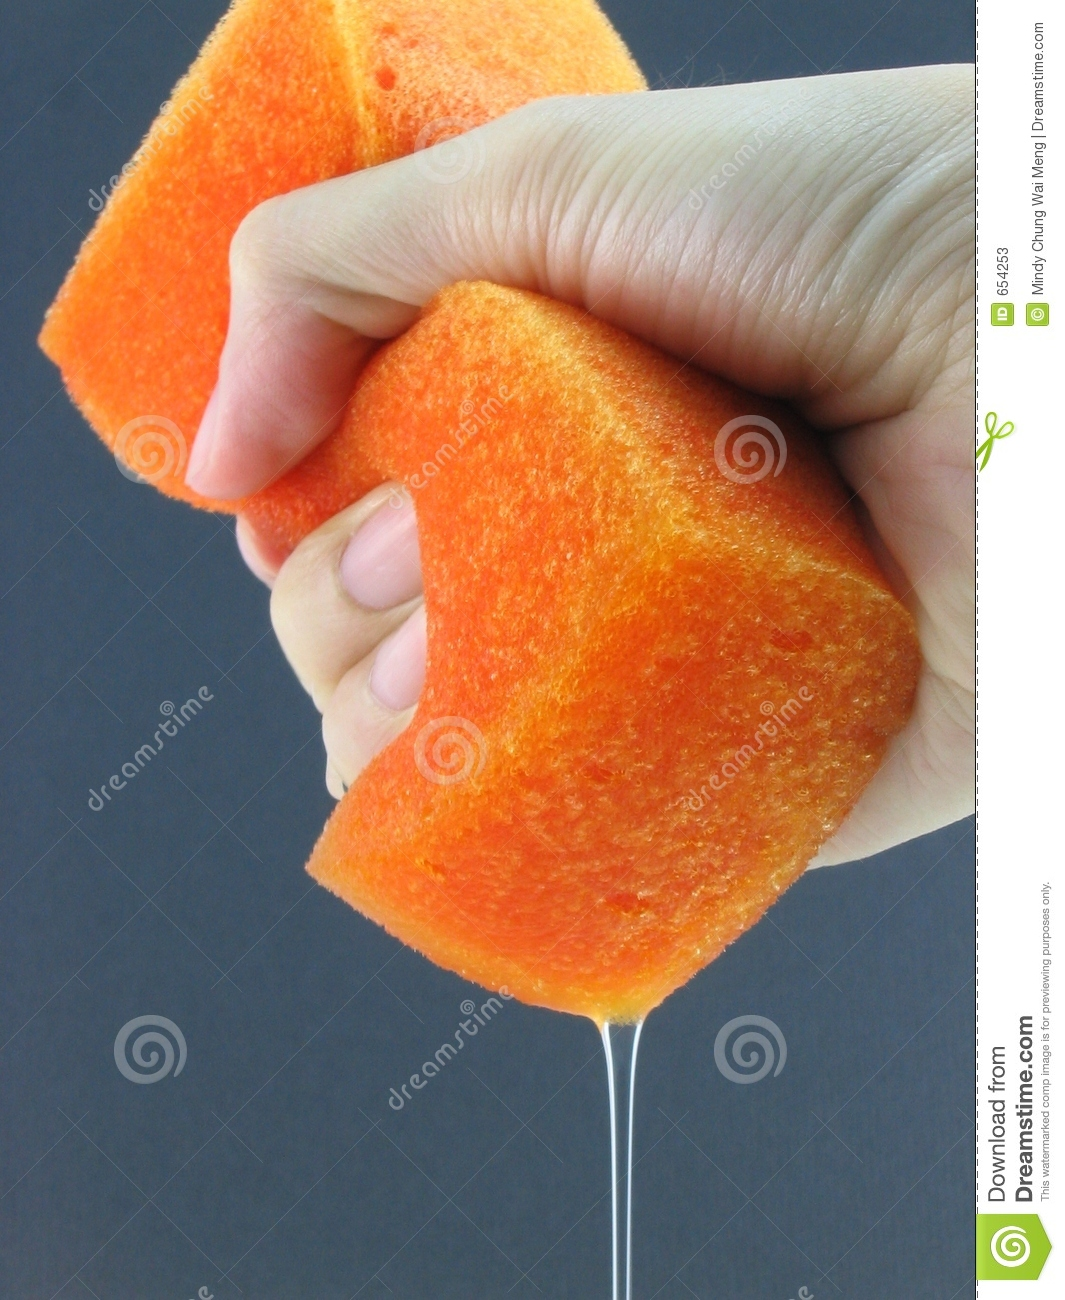 hand squeezing water out from a wet orange sponge.